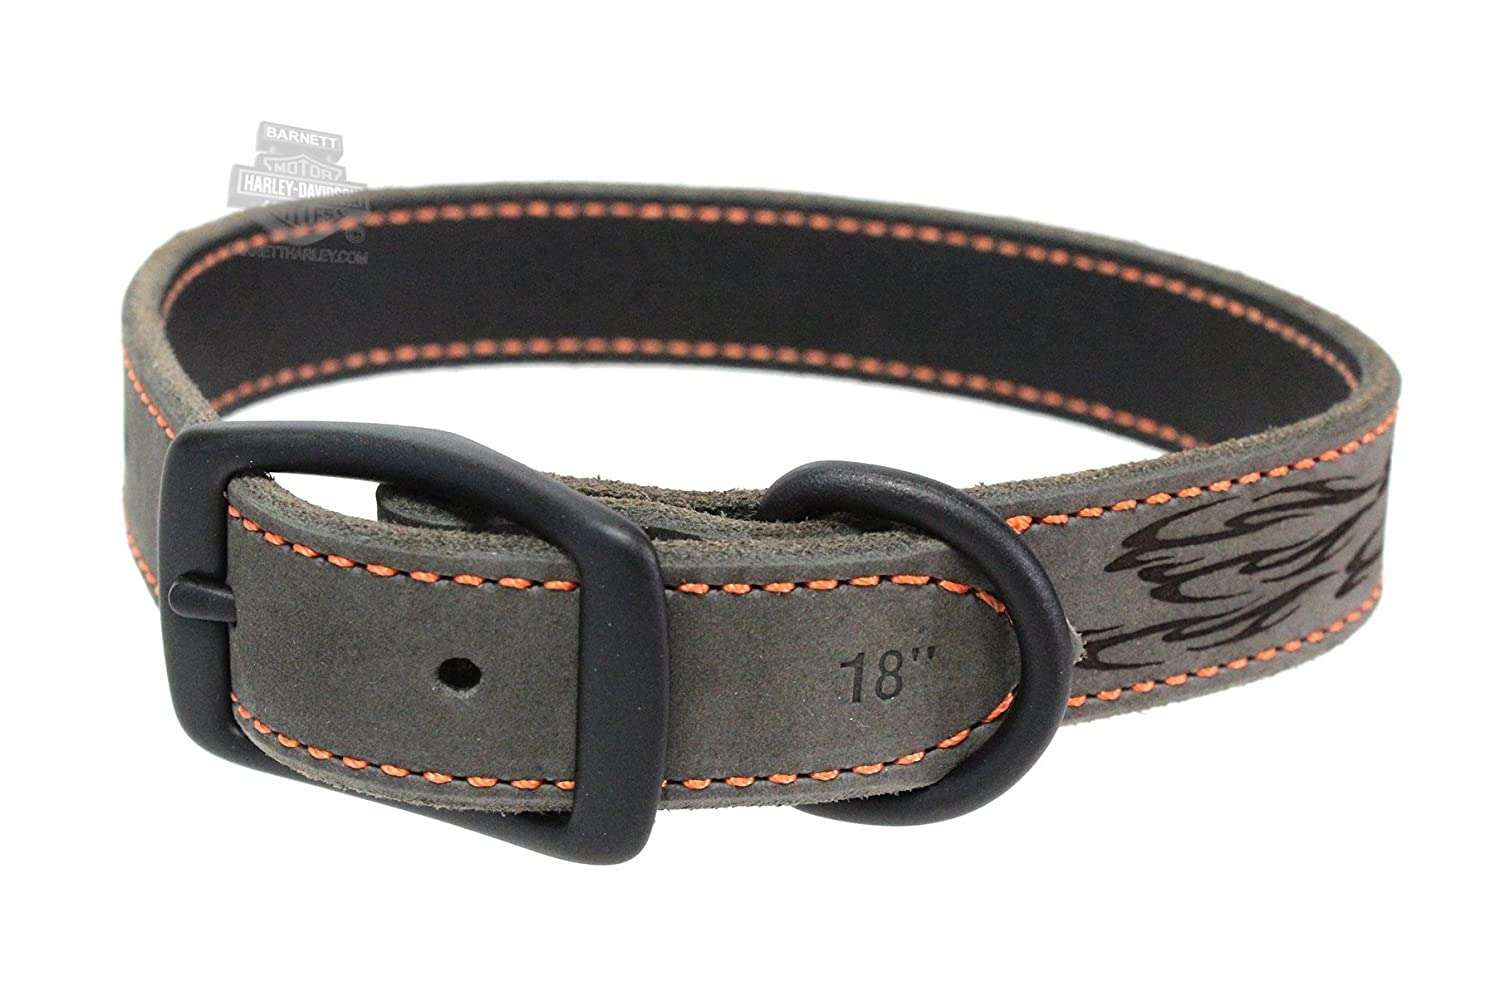 Harley-Davidson Lazered Flames Rustic Leather 1 Leather Pet Collar20